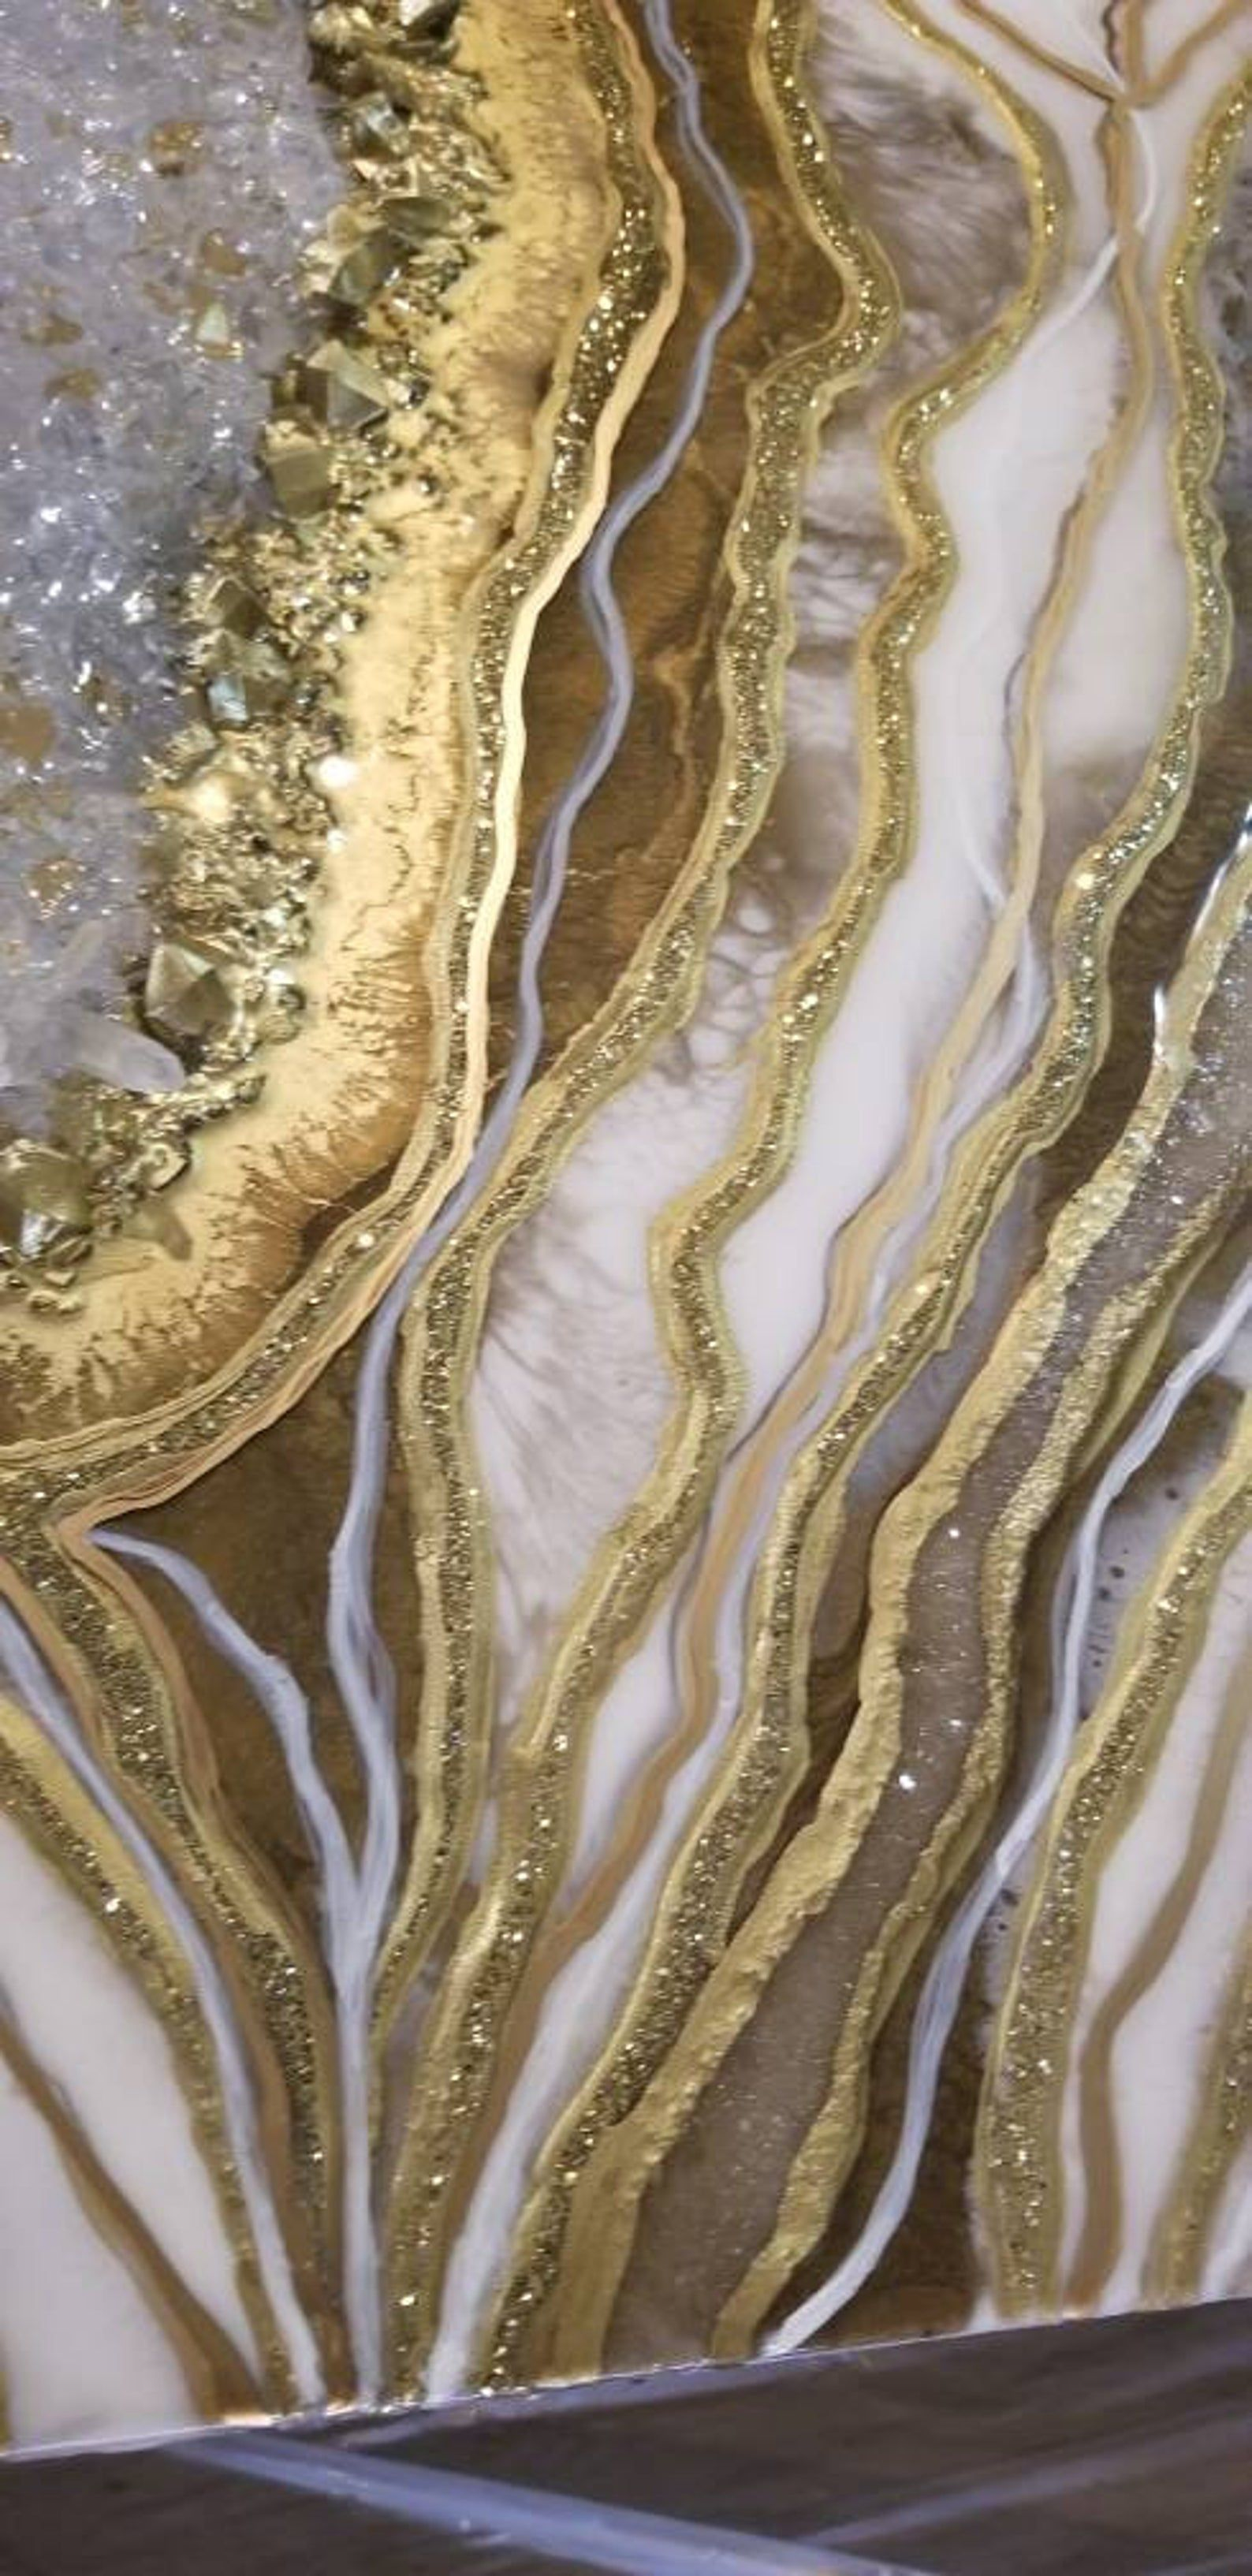 Large Geode Painting White And Gold Geode Wall Painting Etsy White And Gold Wallpaper Marble Wallpaper Phone Aesthetic Wallpapers